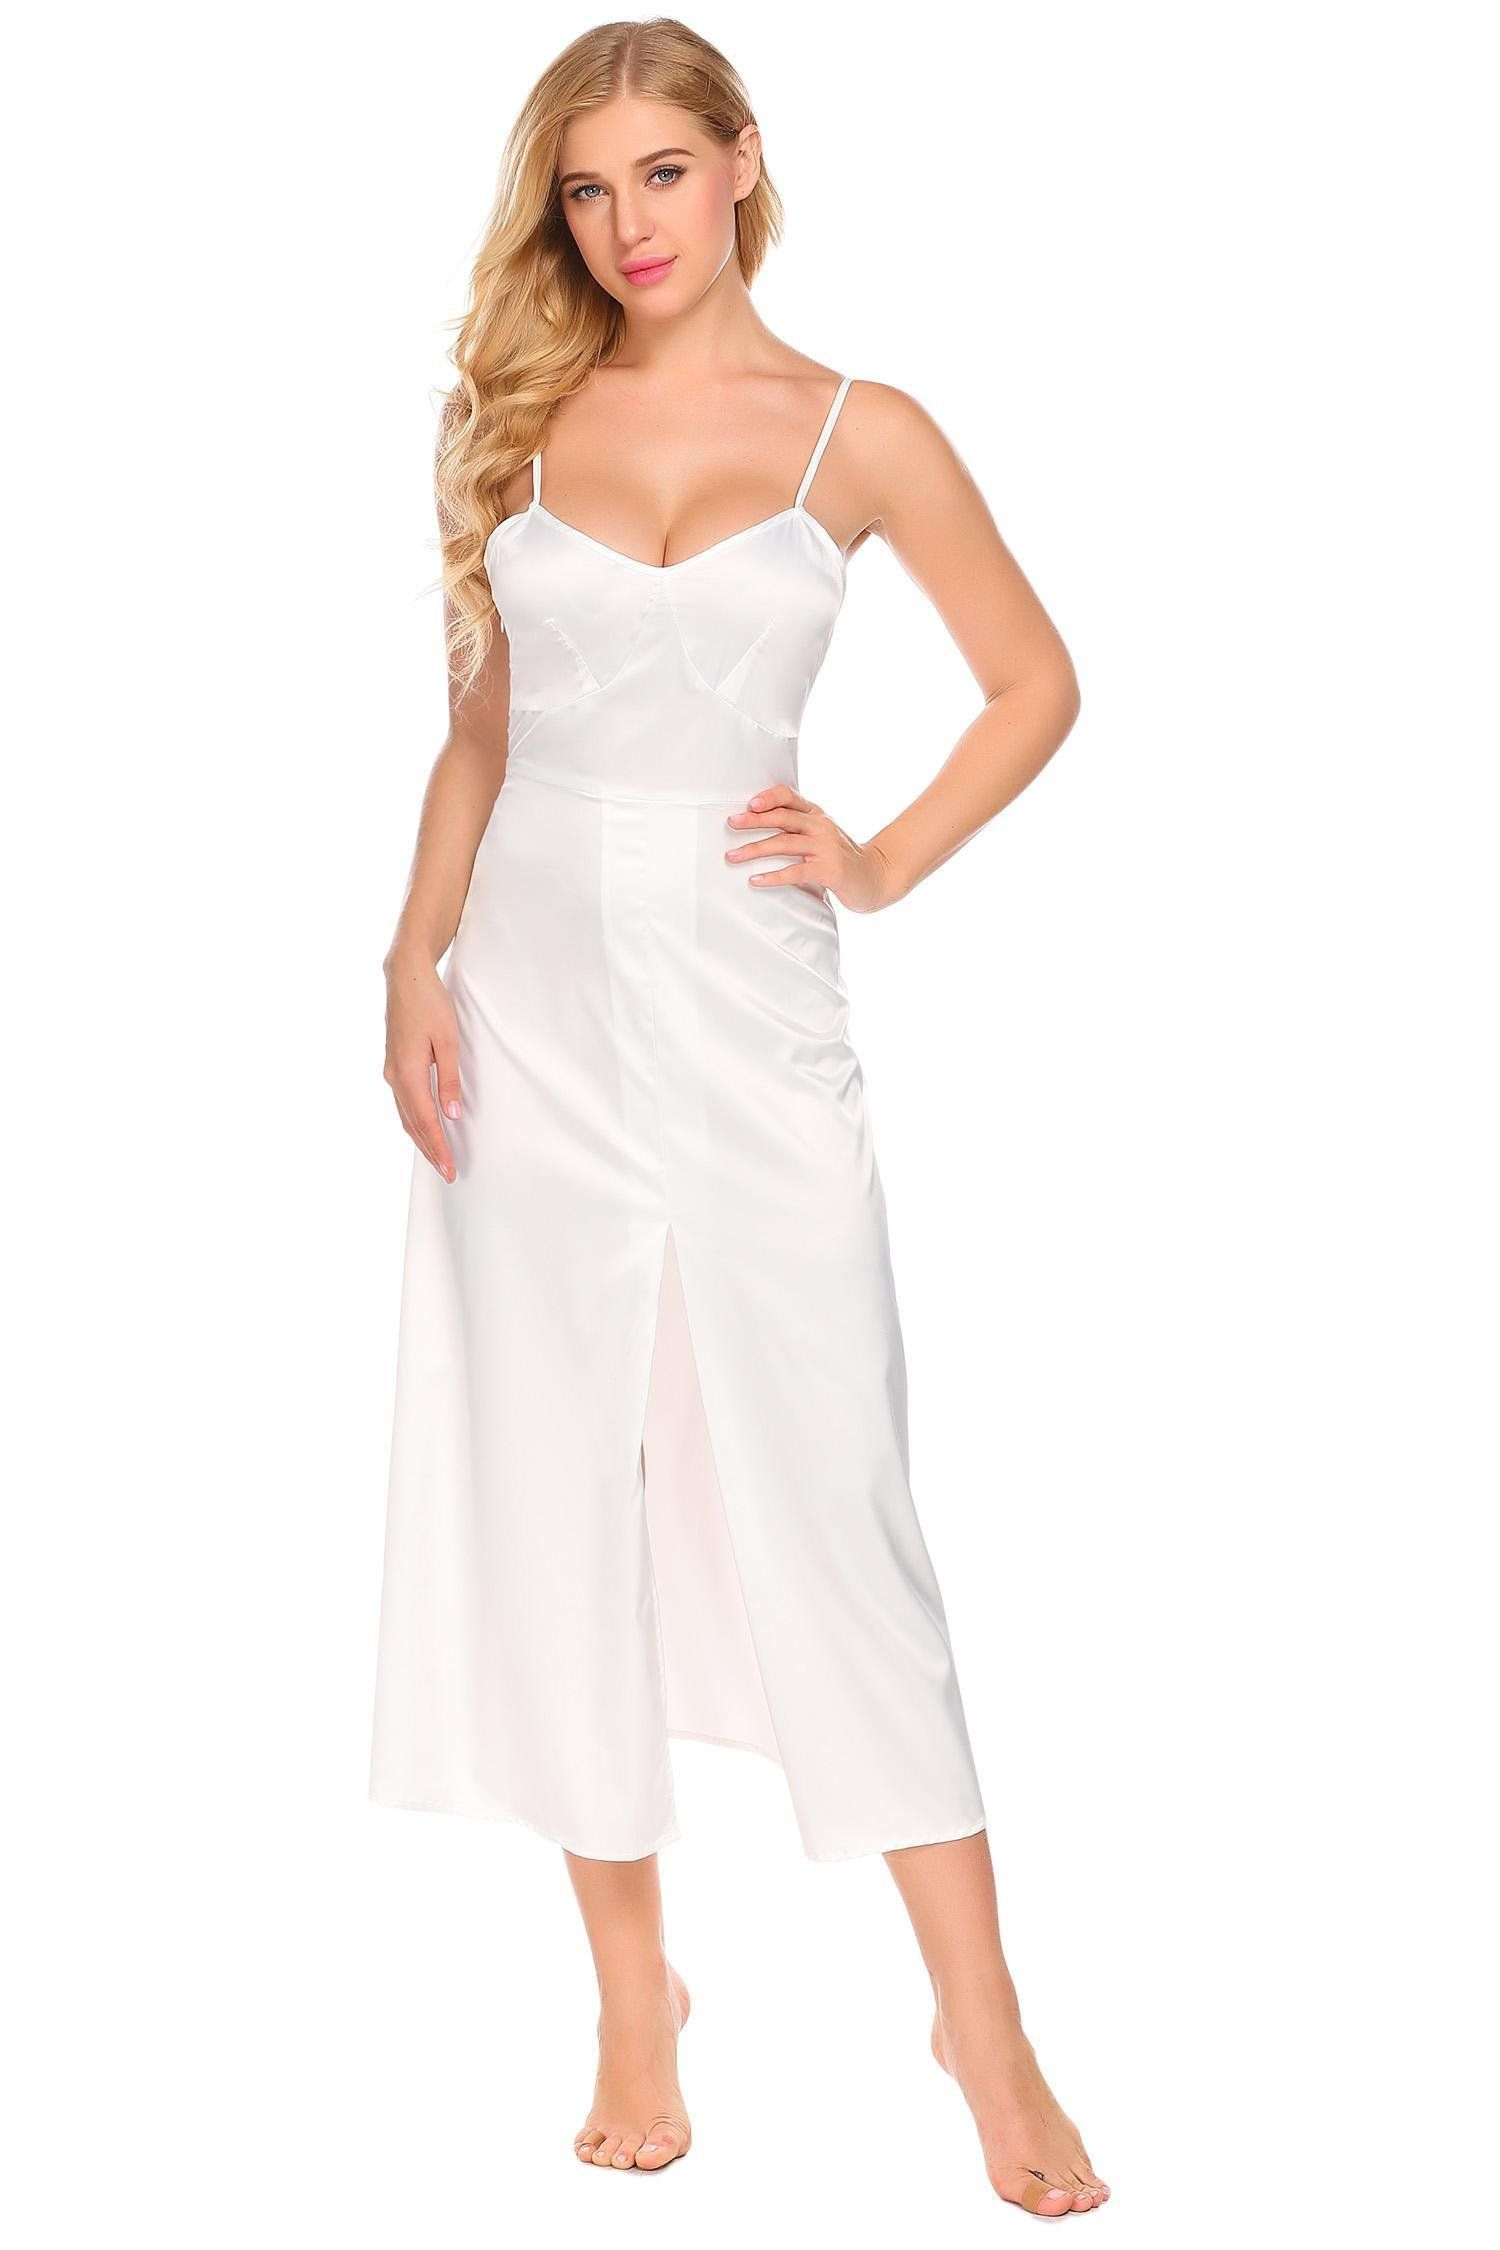 c1902e0b8639e BULGES Women Long Satin Nightgowns Sleeveless Chemises Nightdress Full  Slips Sleepwear     Inspect out this wonderful product. (This is an  affiliate link).